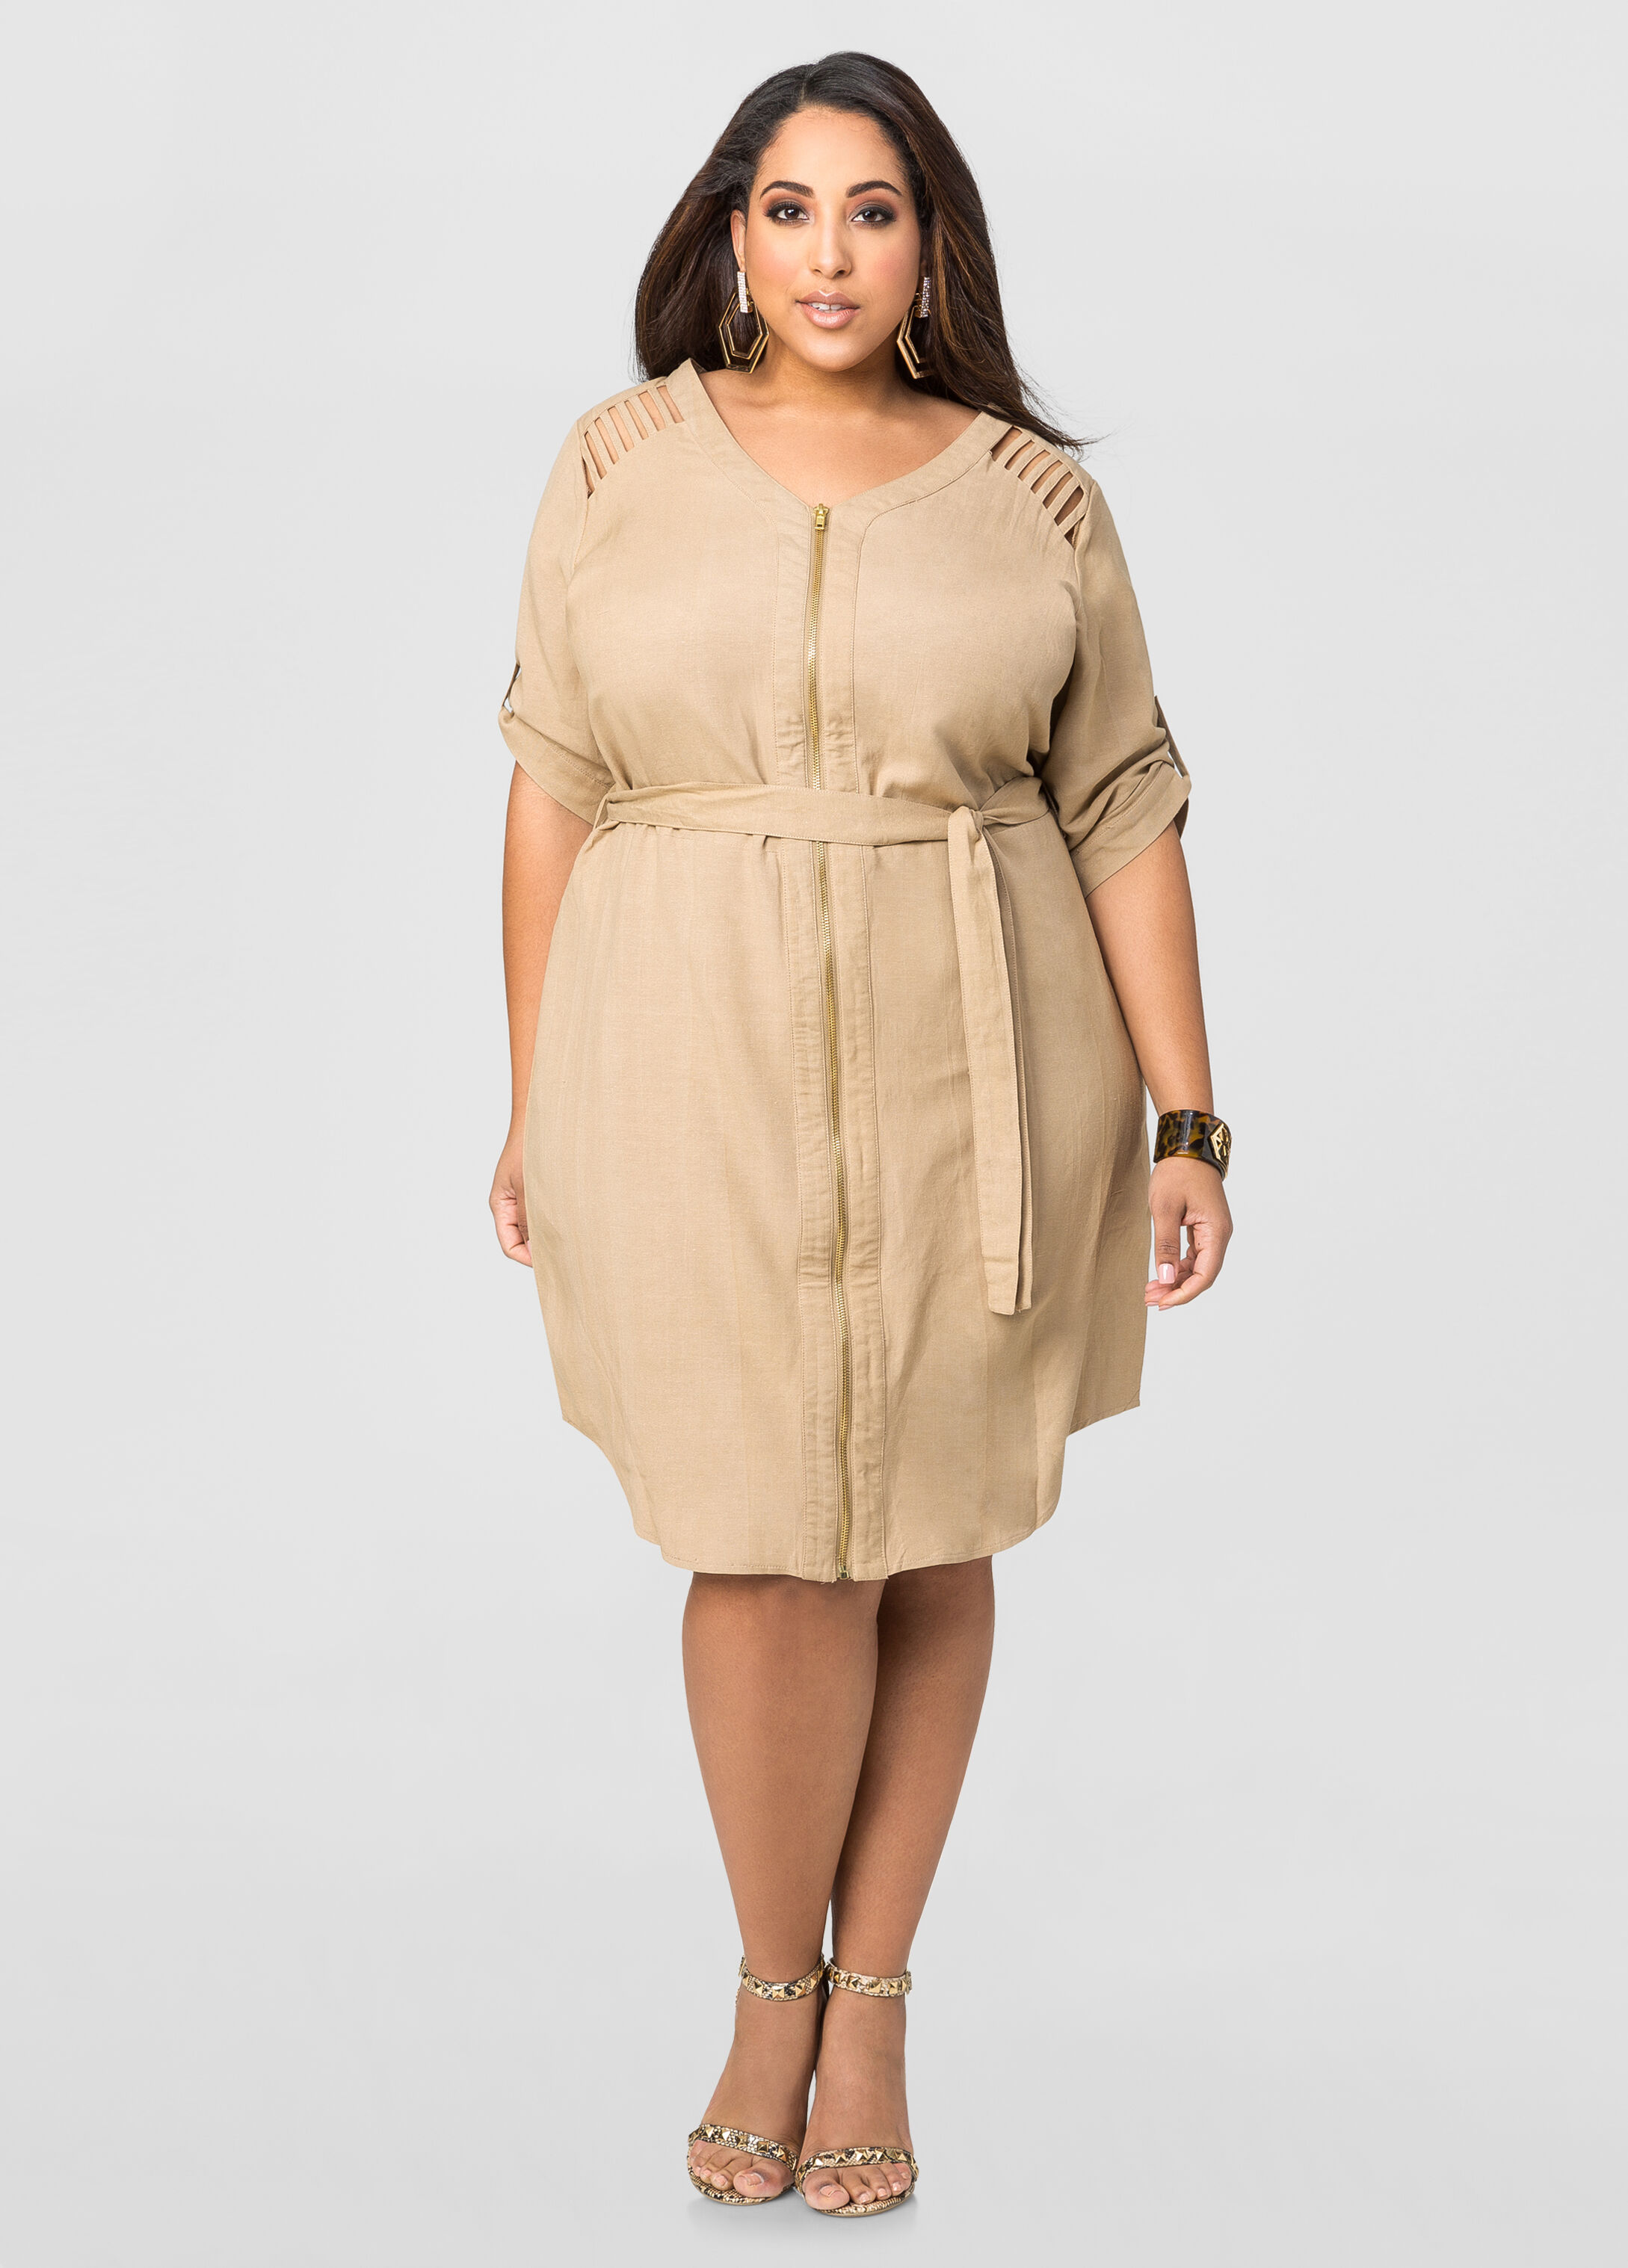 Our plus size range of quirky linen provides a wonderful contribution to creating the lagenlook